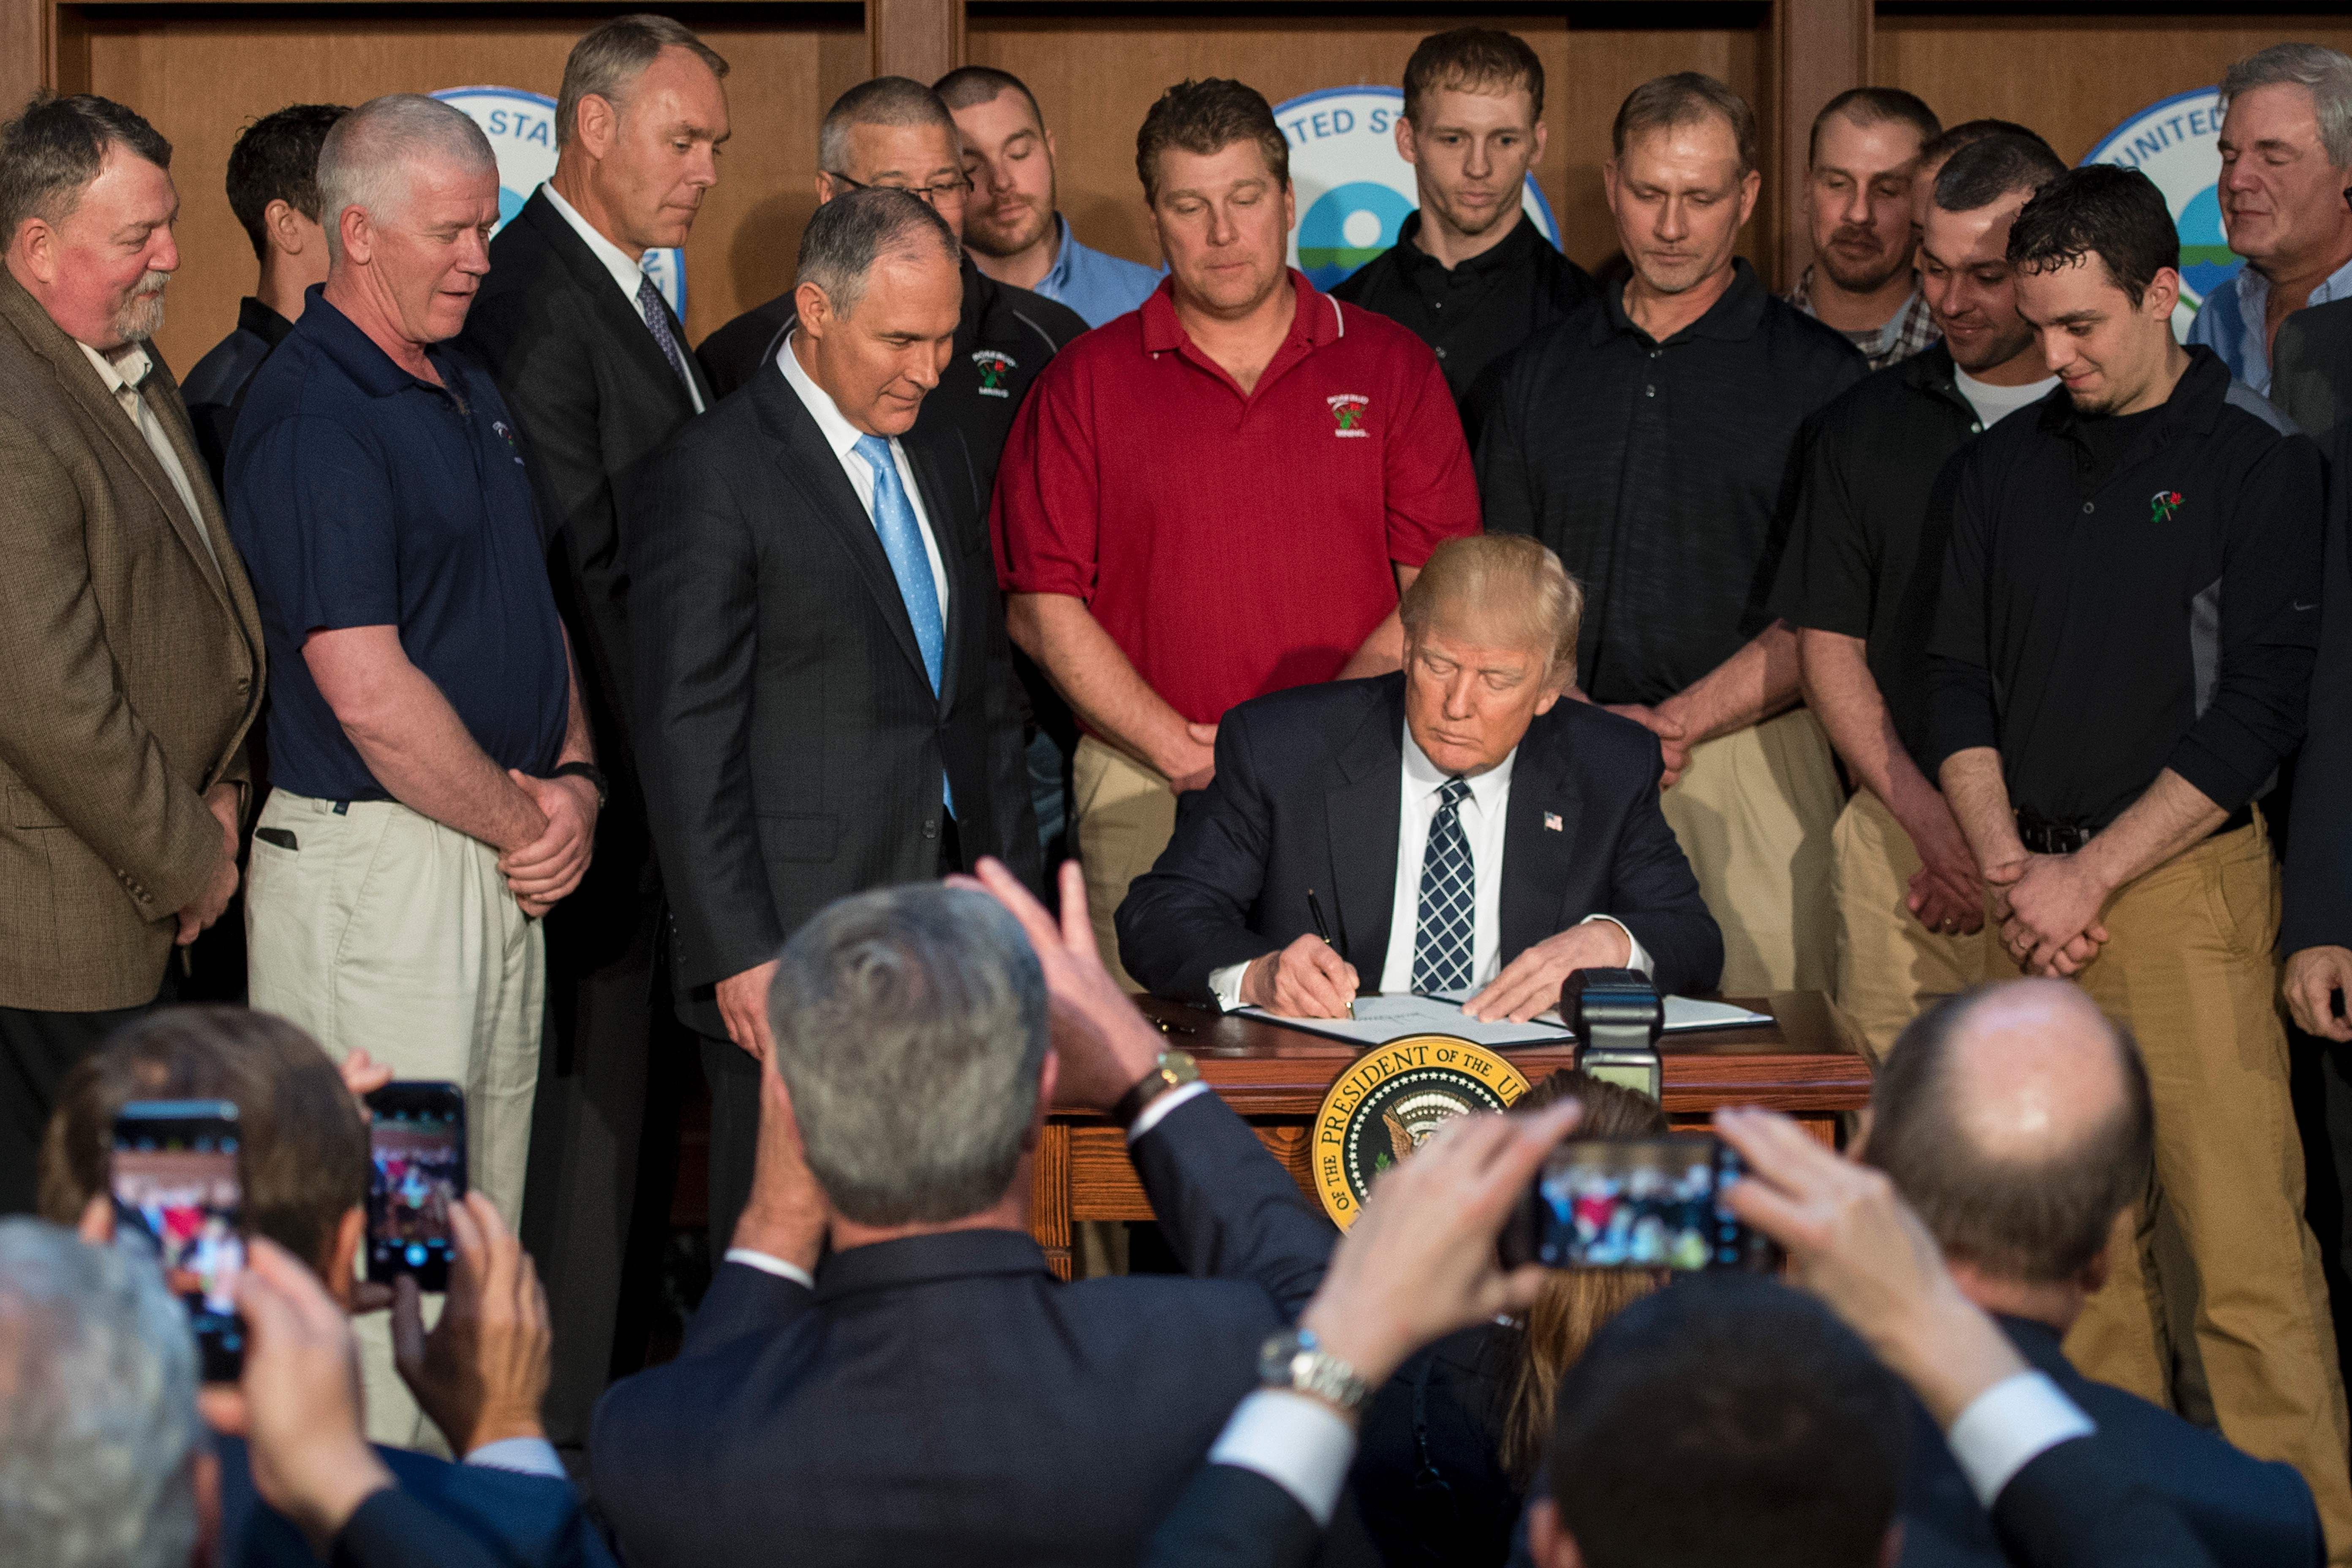 Surrounded by miners from Rosebud Mining, U.S. President Donald Trump signs the Energy Independence Executive Order at the Environmental Protection Agency (EPA) Headquarters in Washington, DC, March 28, 2017.